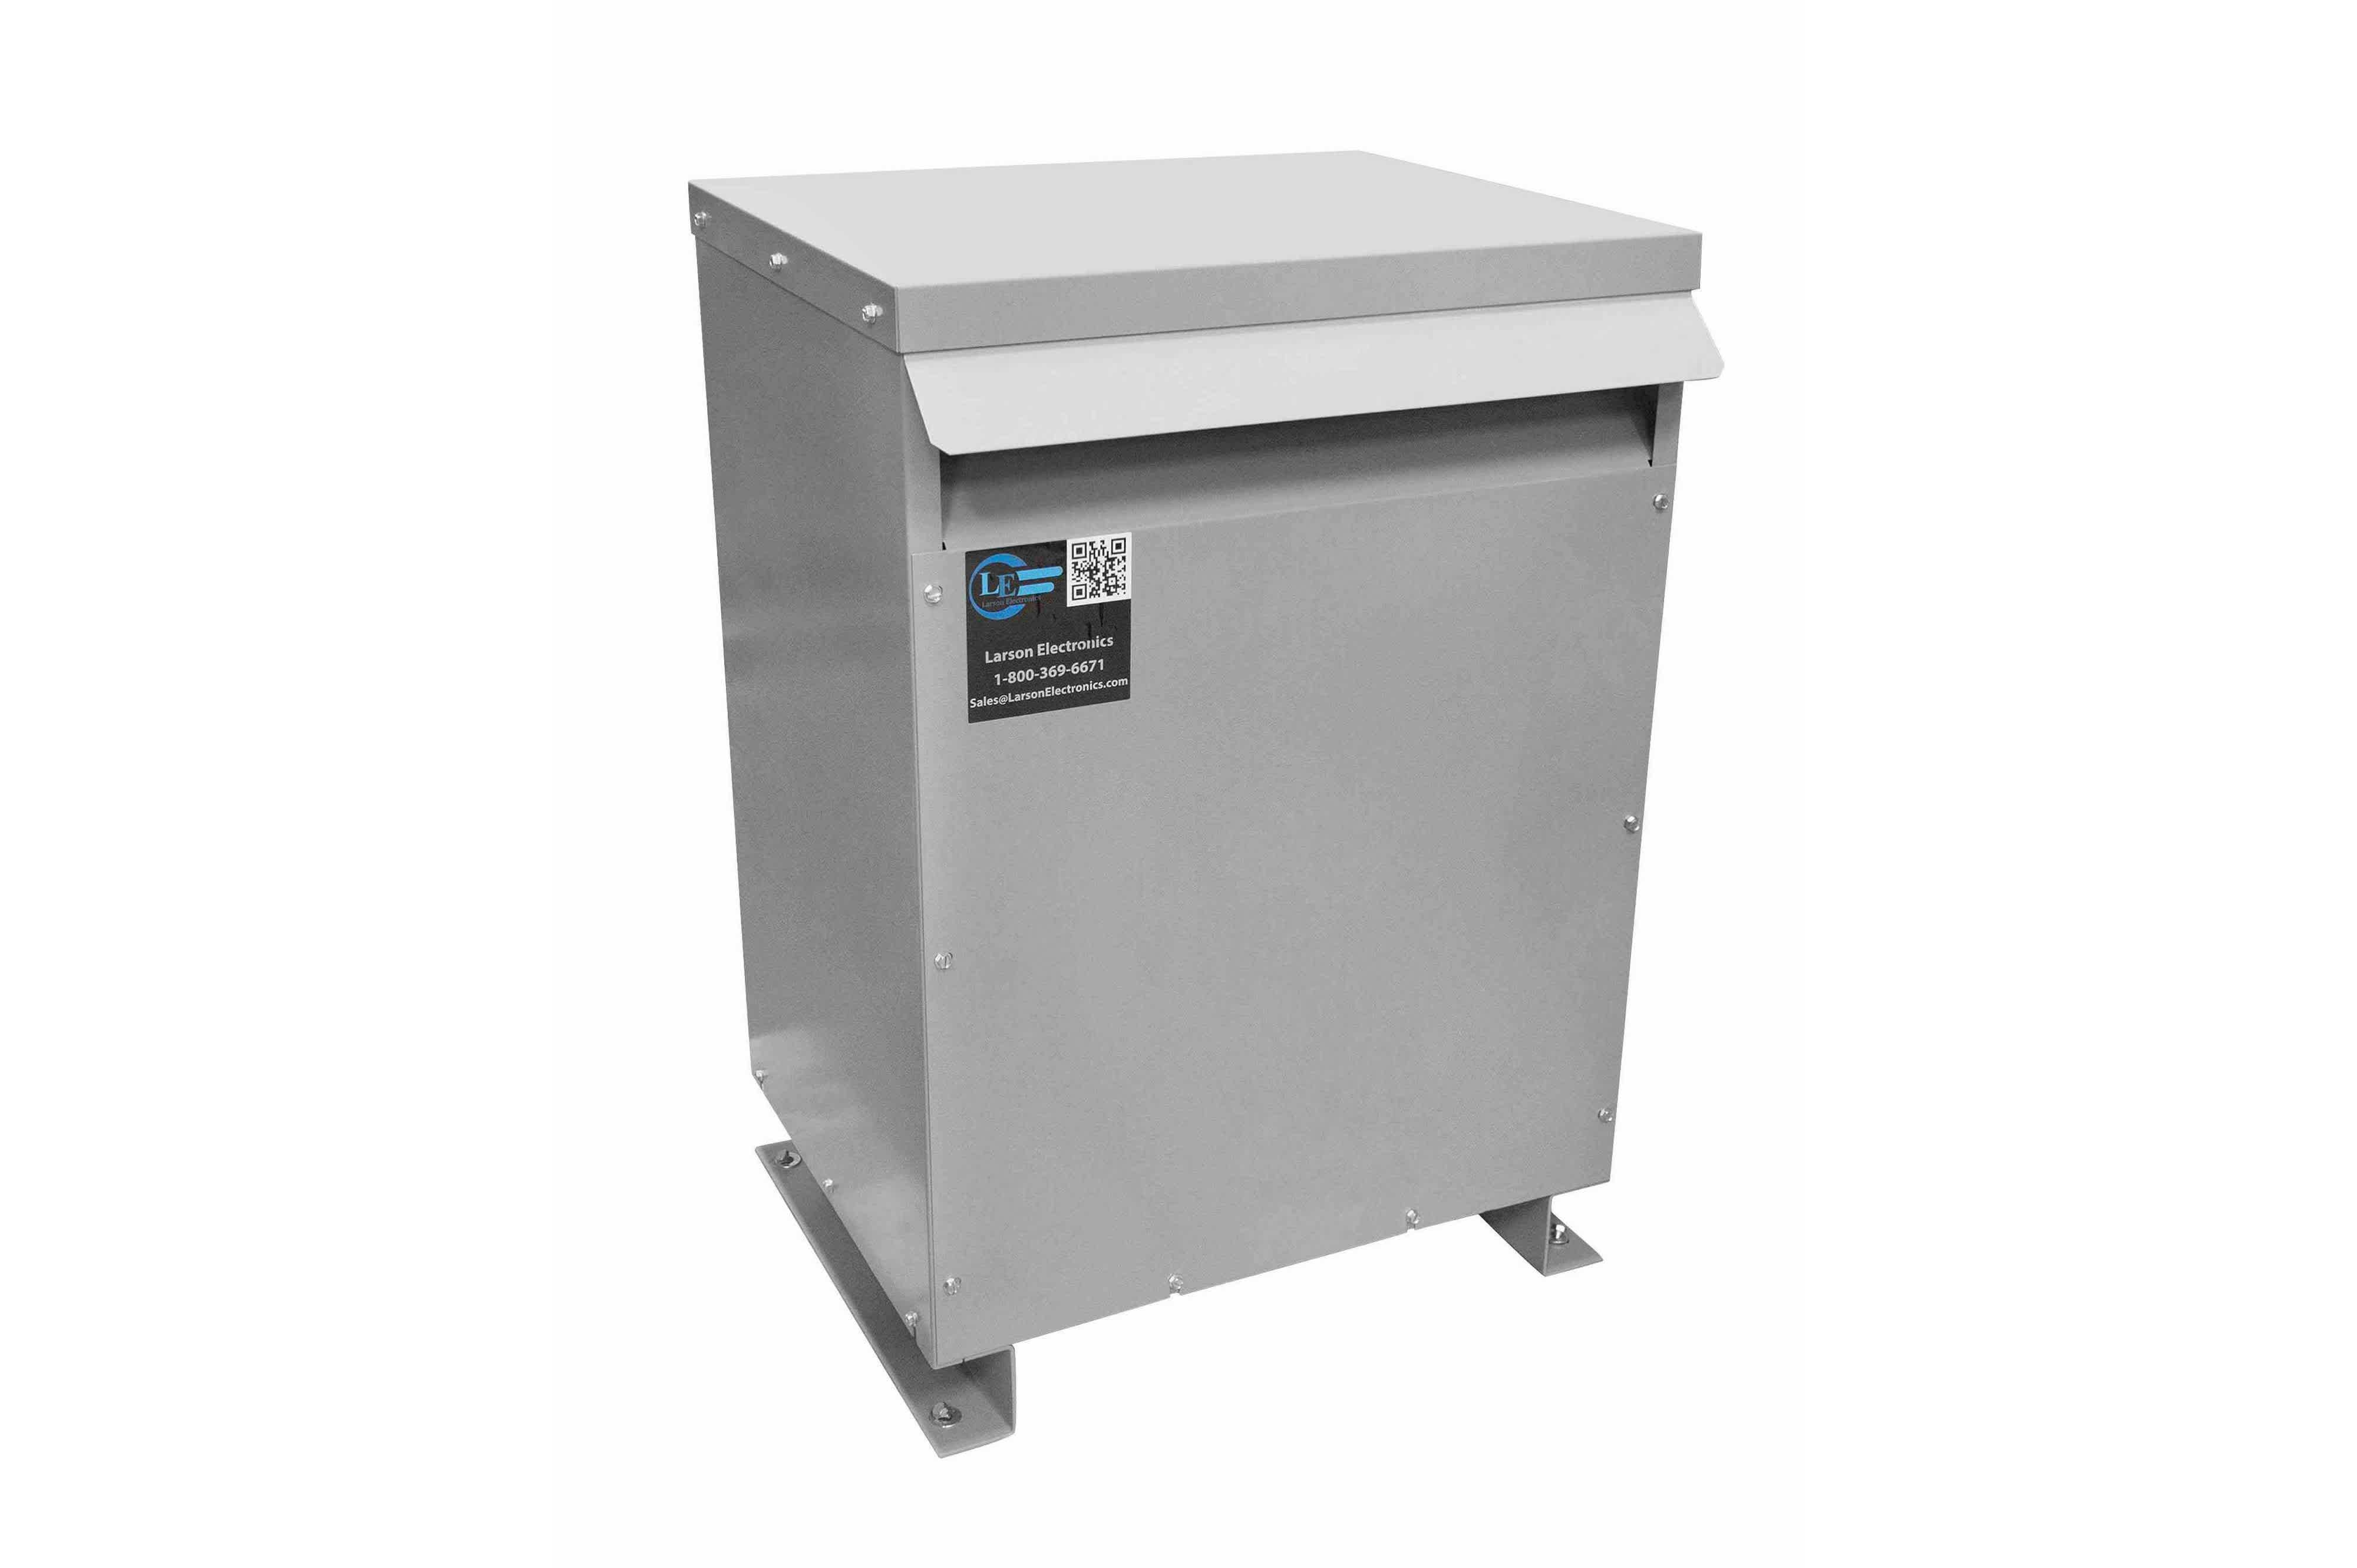 12 kVA 3PH Isolation Transformer, 480V Wye Primary, 380Y/220 Wye-N Secondary, N3R, Ventilated, 60 Hz